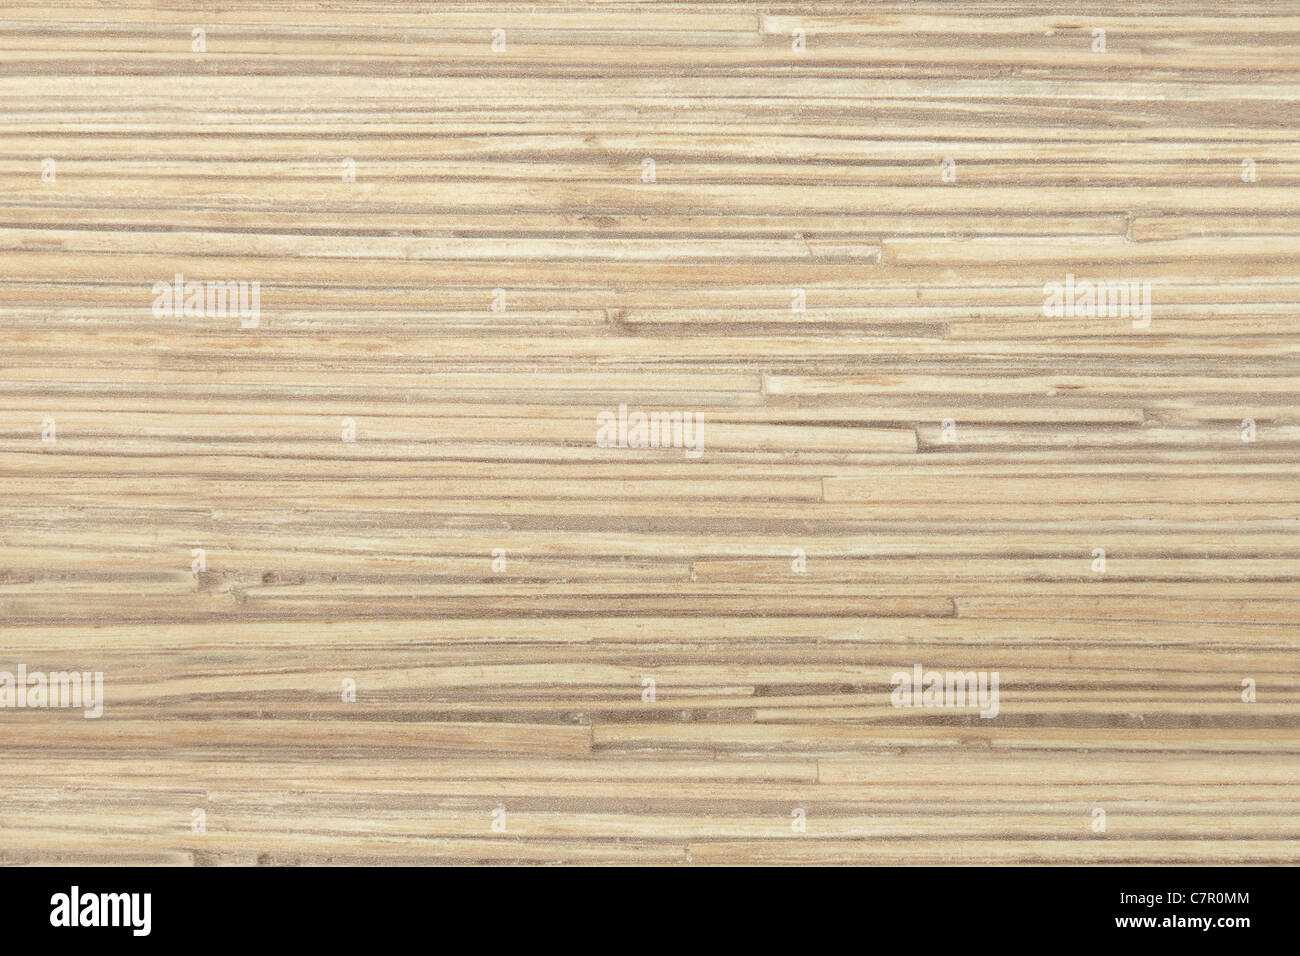 High quality straw seagrass texture. - Stock Image